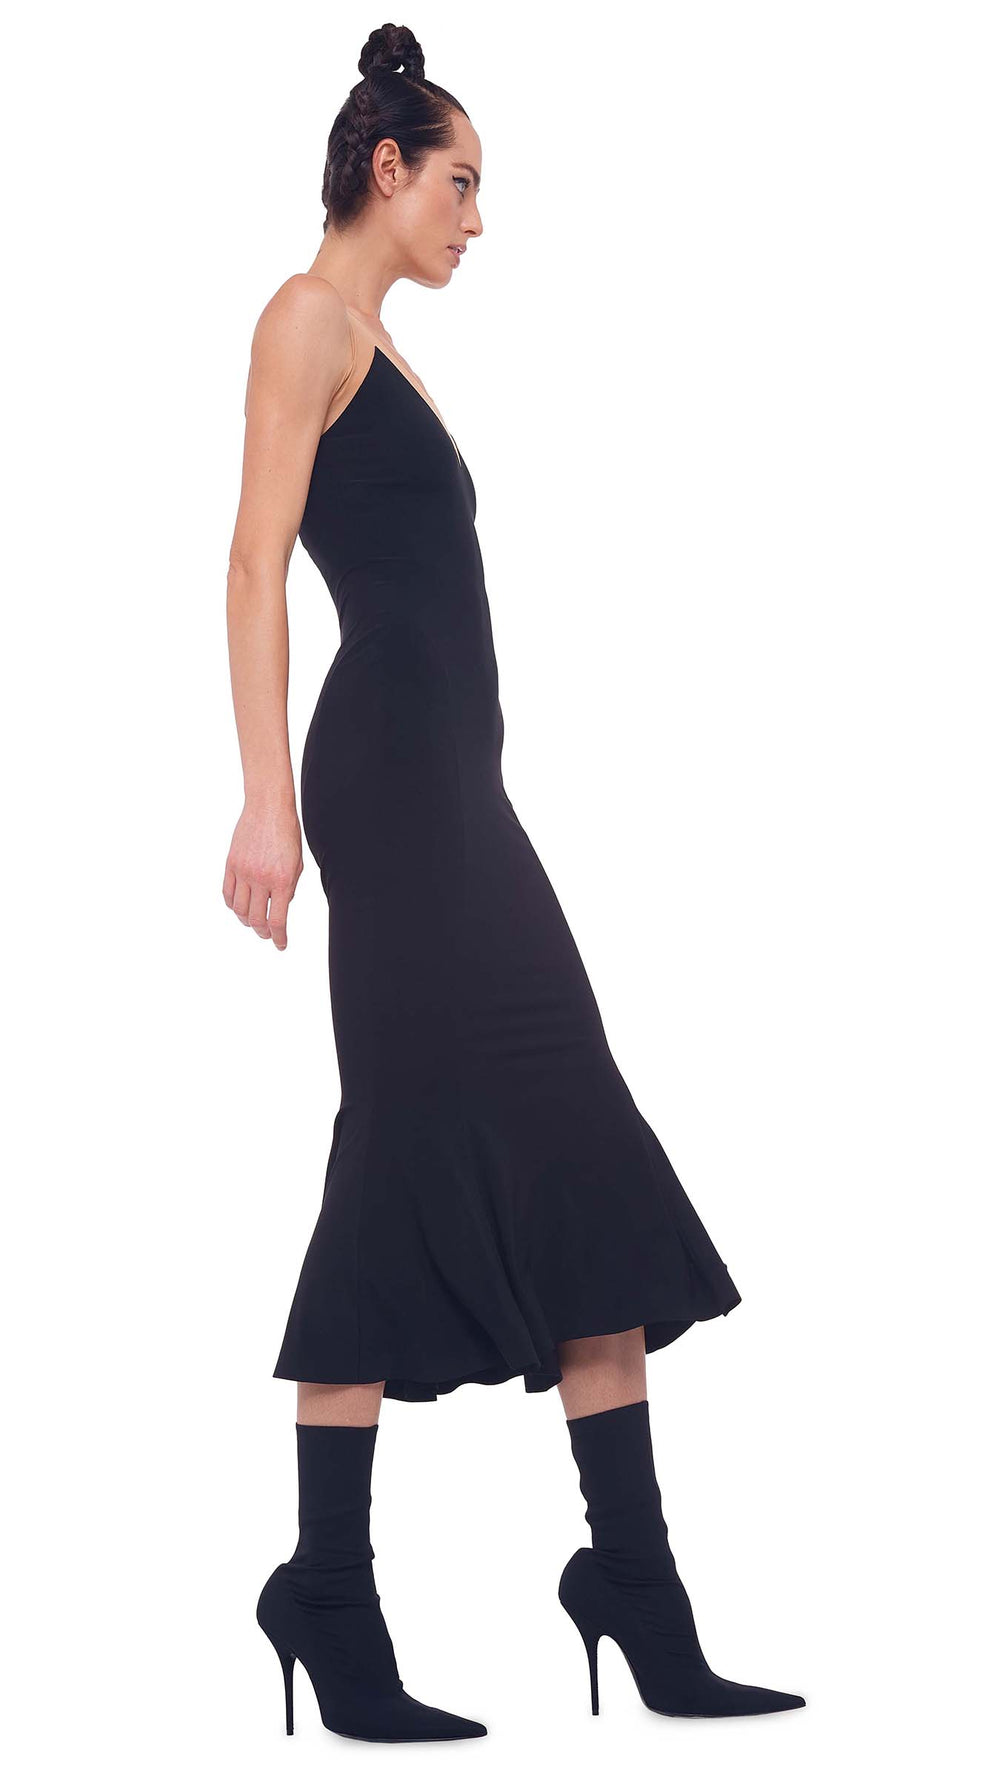 RACER FISHTAIL DRESS TO MIDCALF